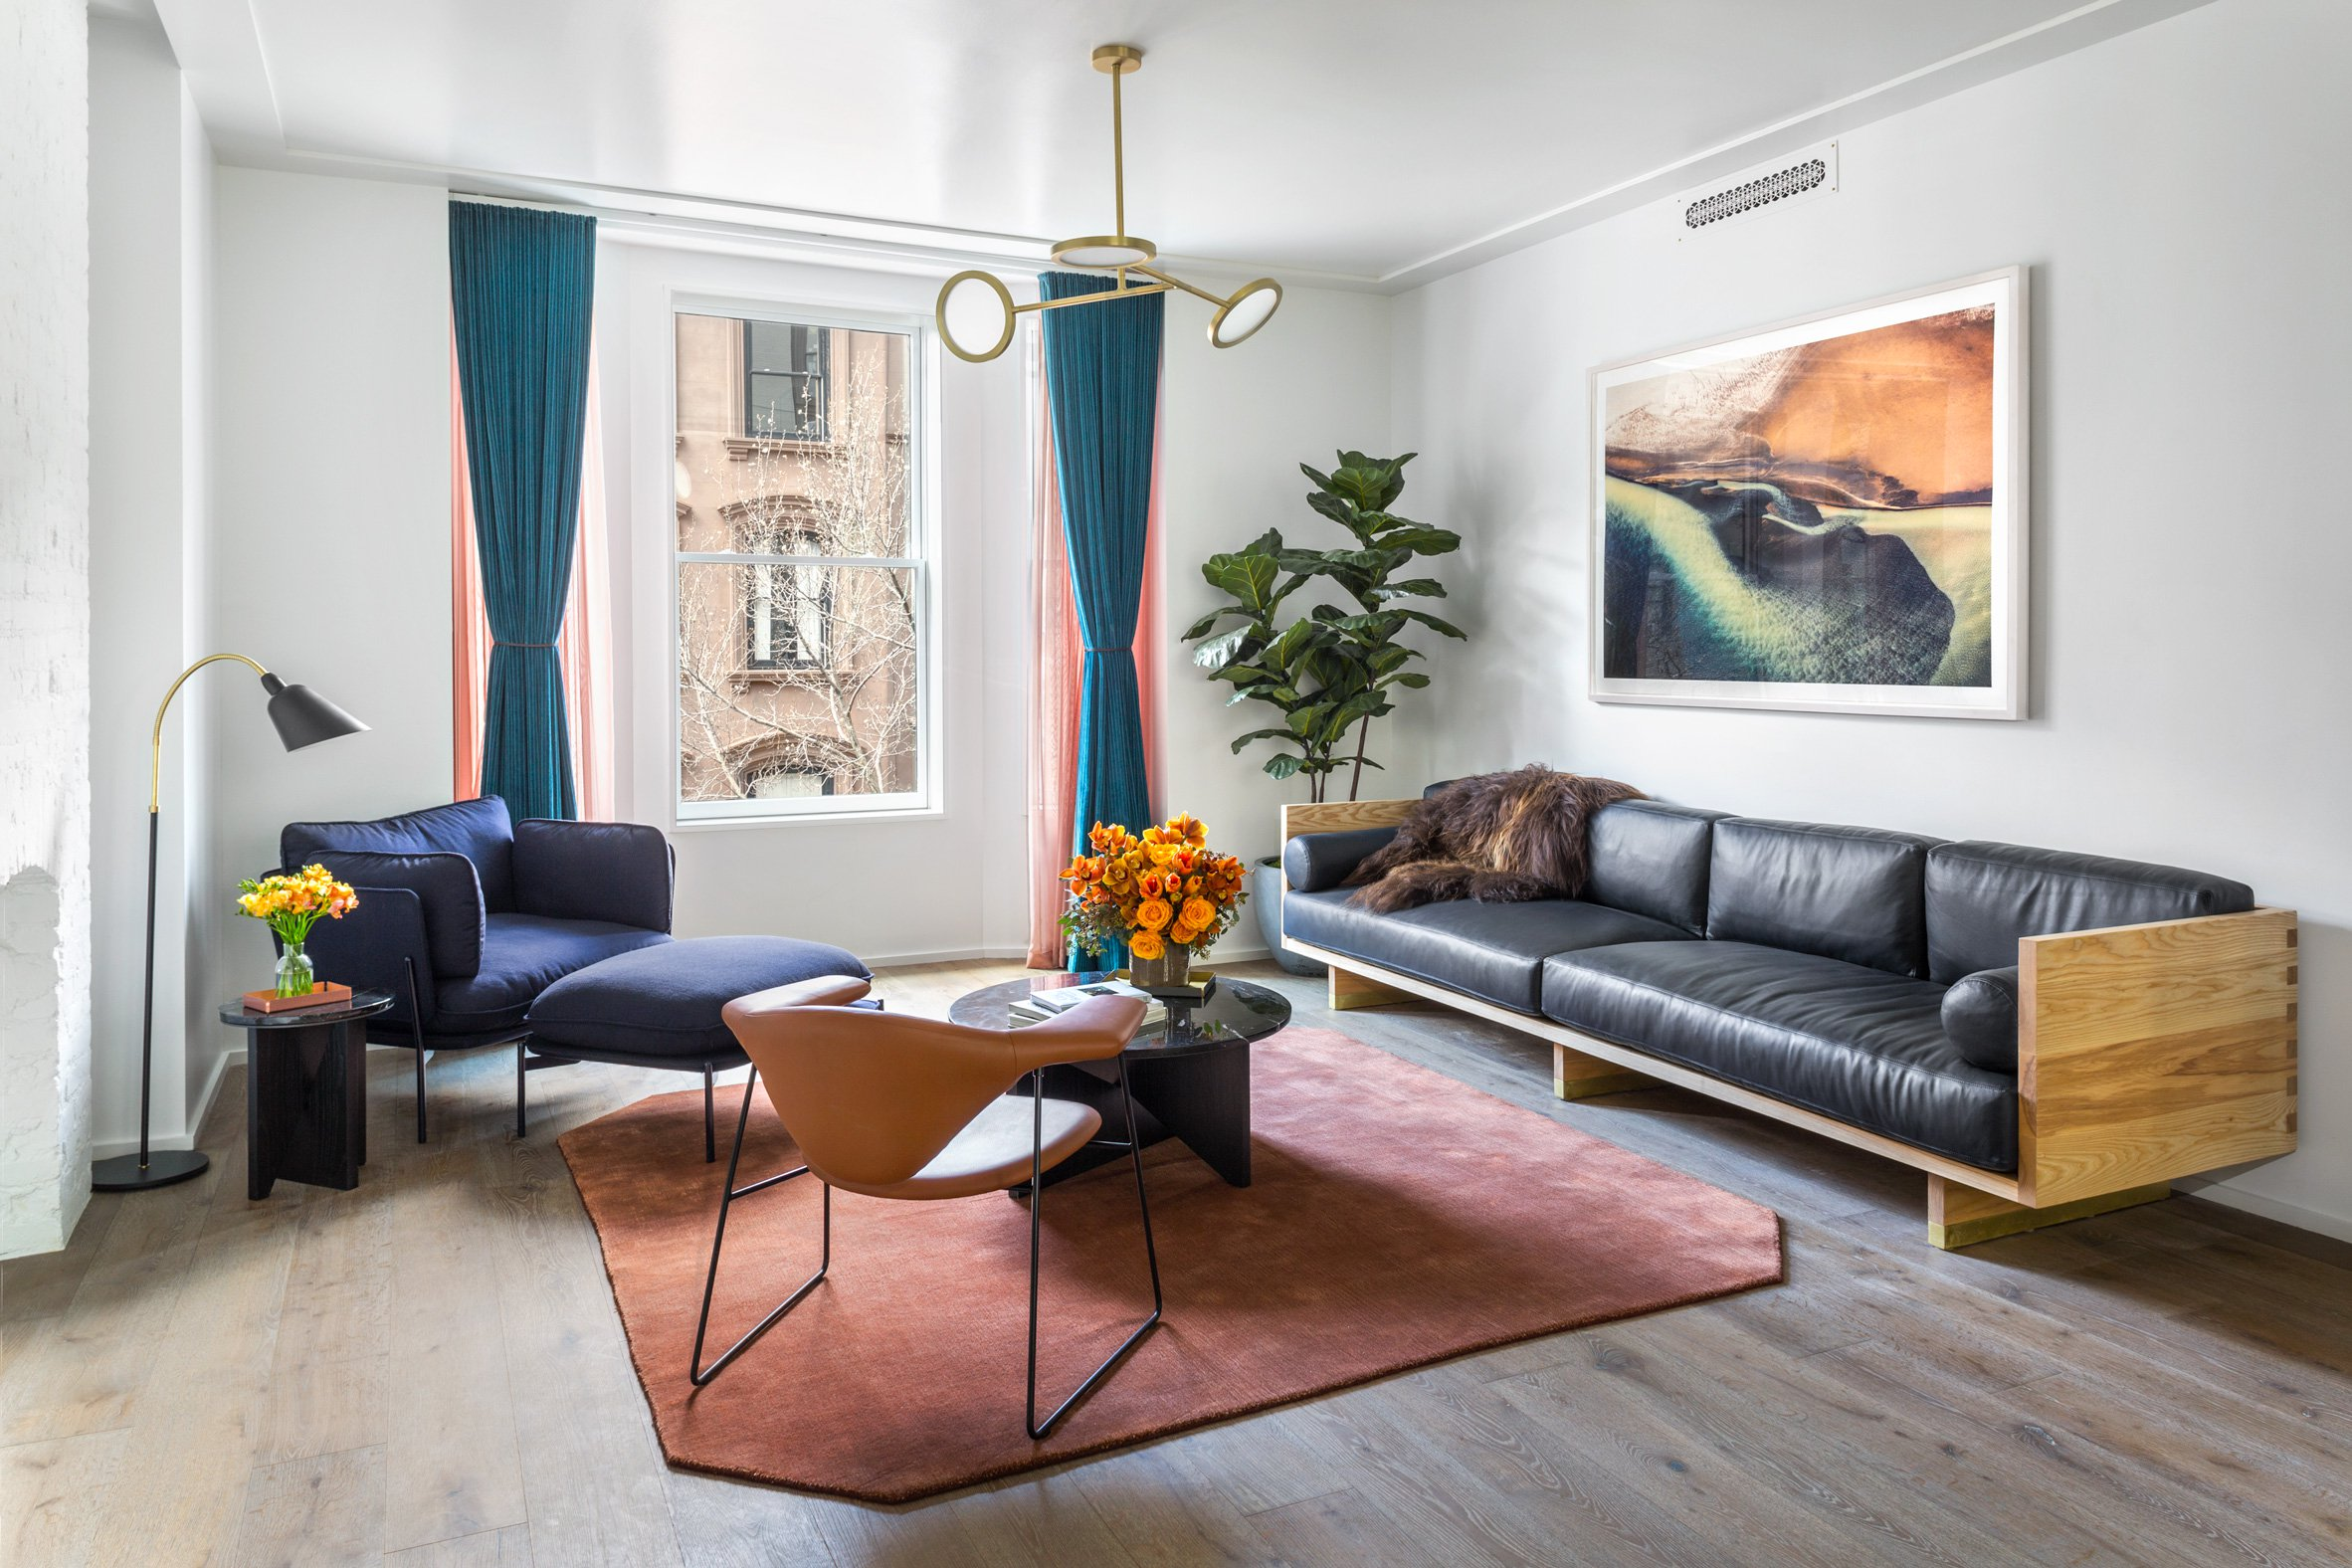 Brooklyn apartment gets chic interior design by local studio matter